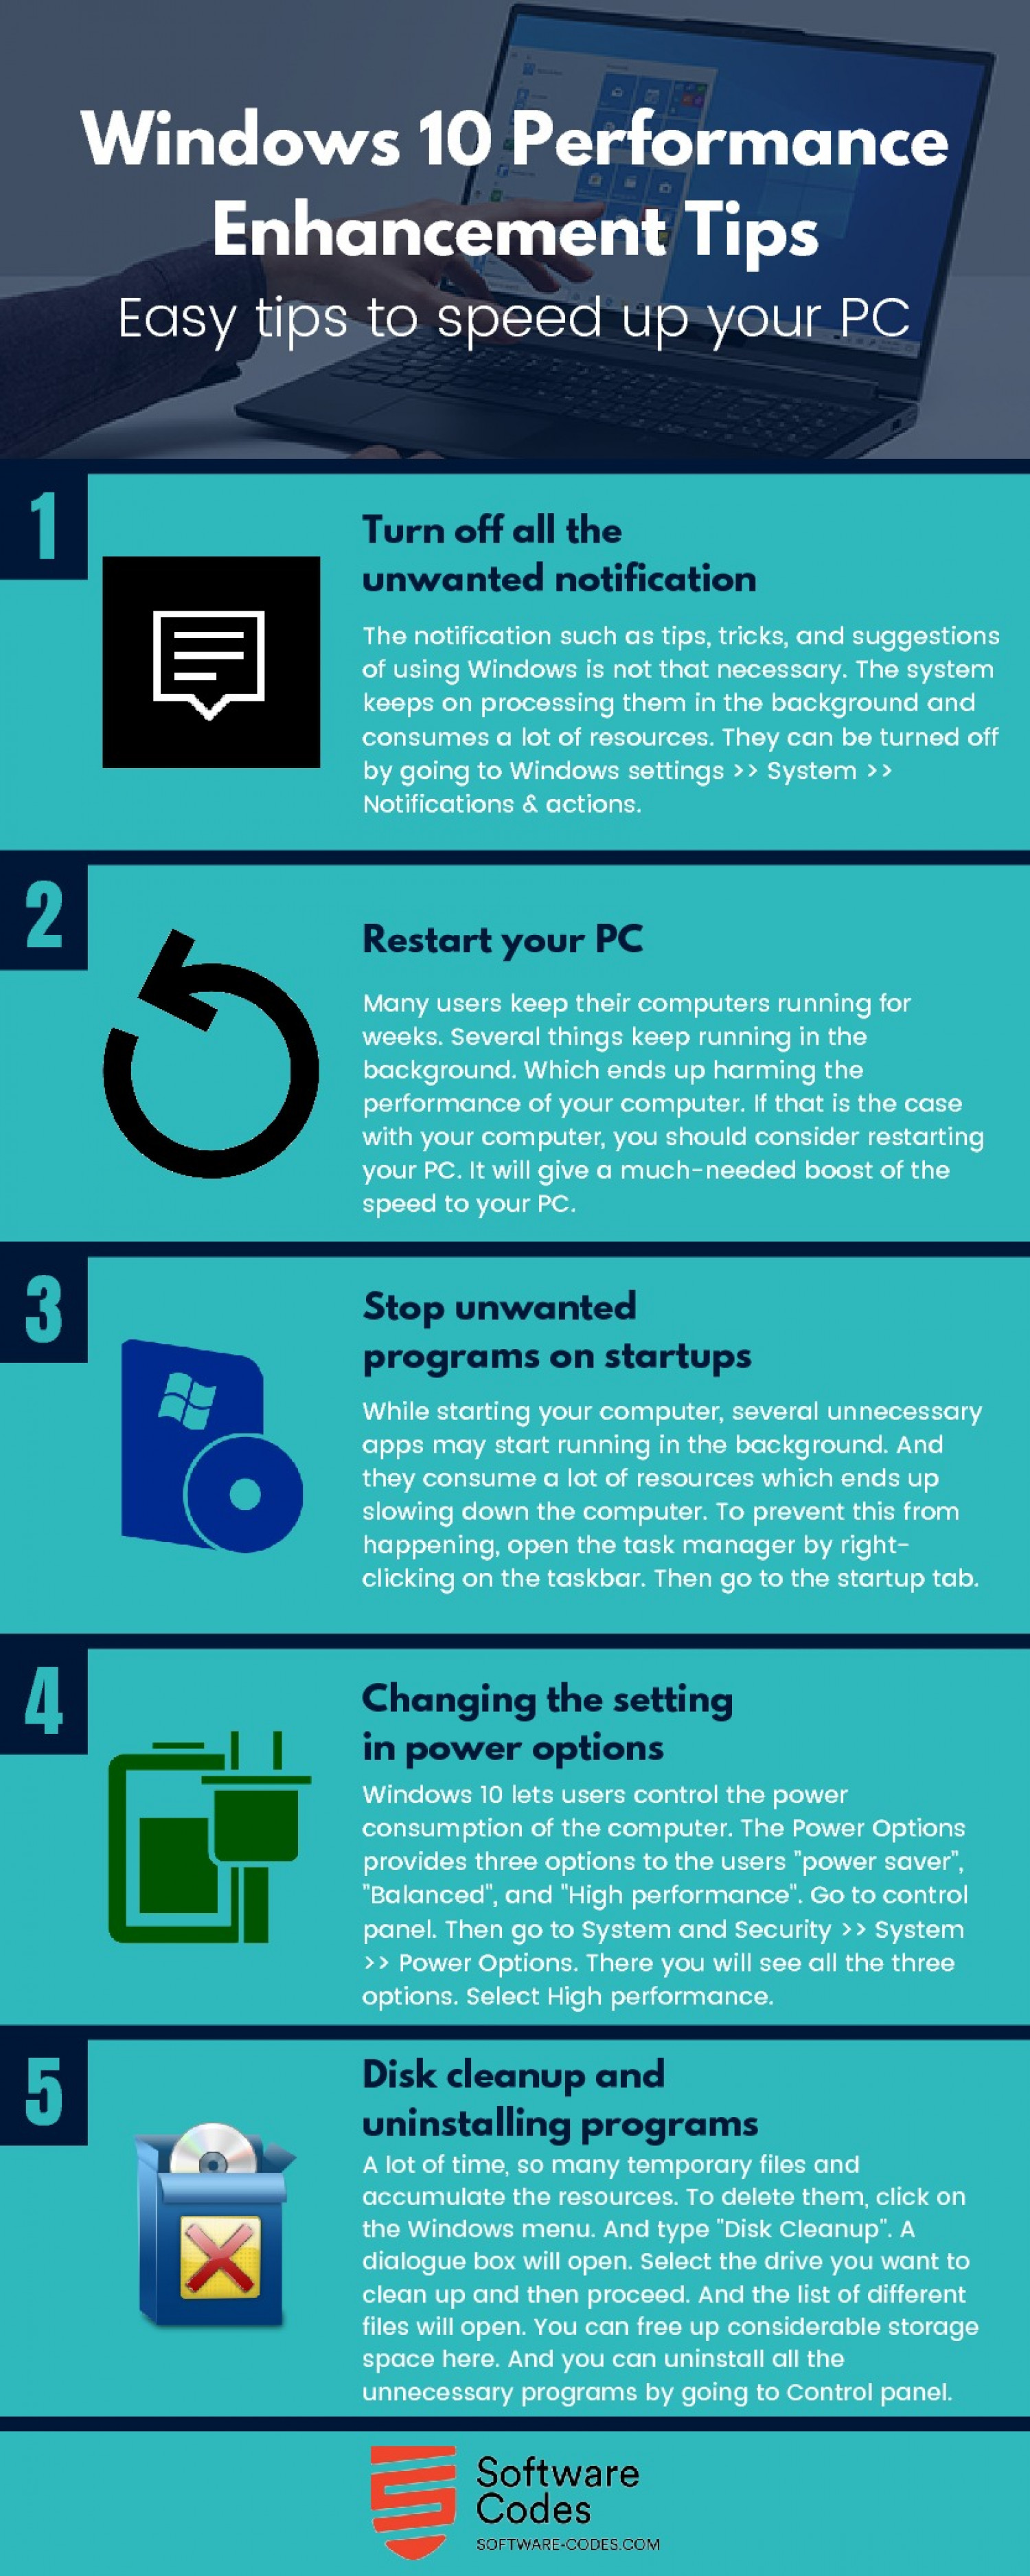 Windows 10 Performance Enhancement: Easy Tips to Speed up your PC Infographic